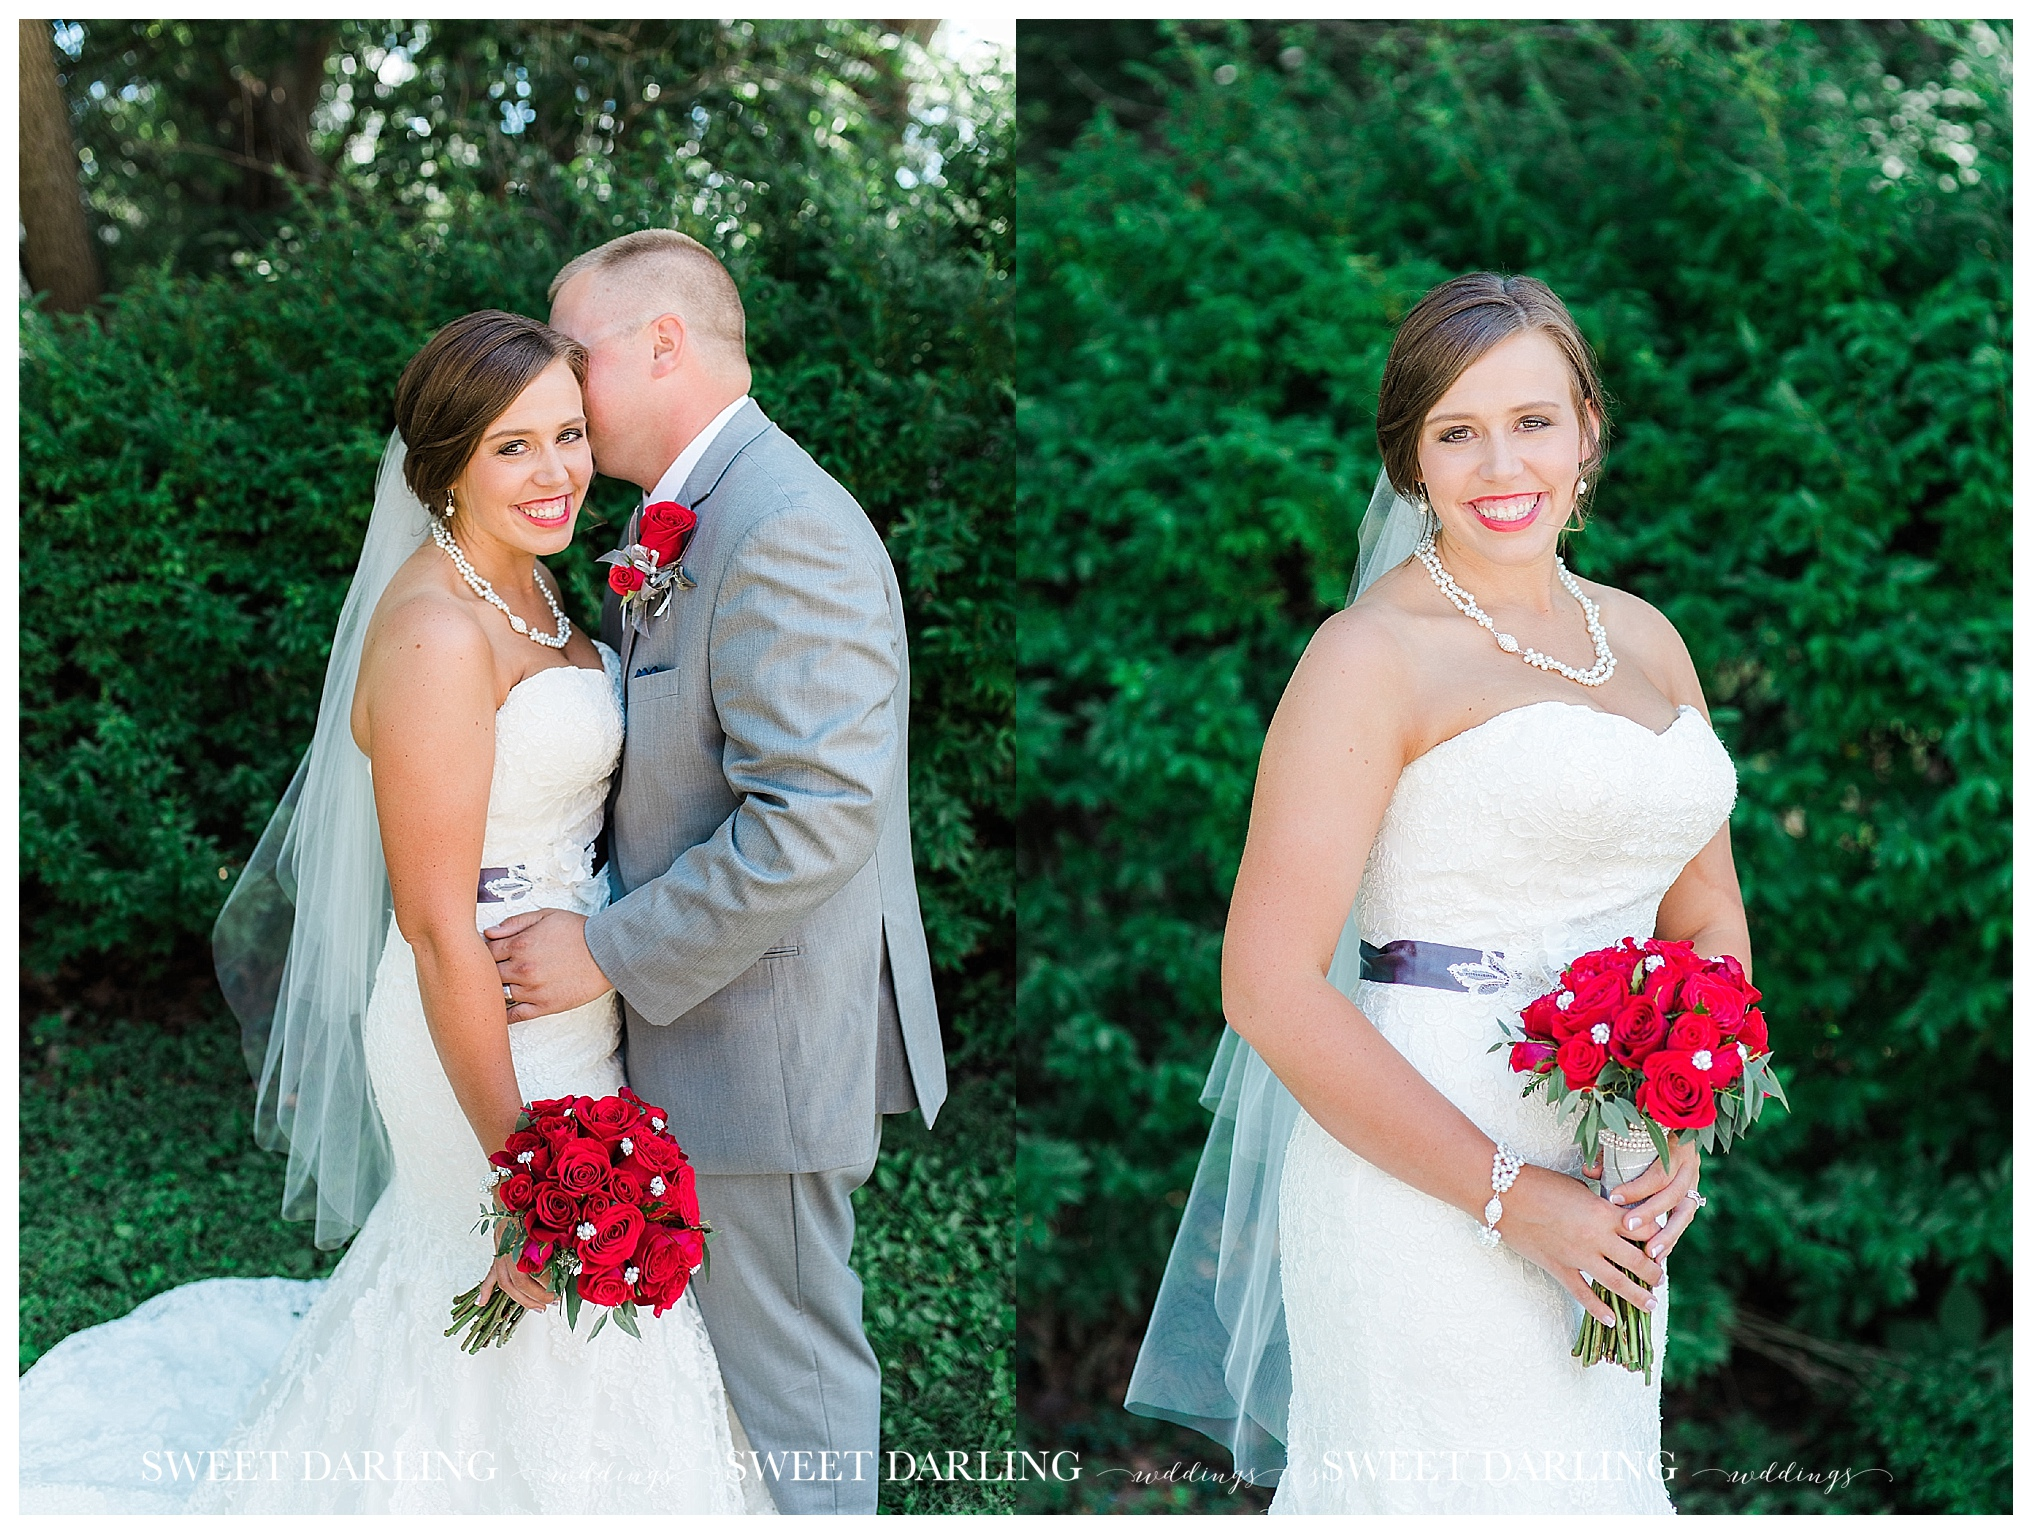 champaign-county-royal-paxton-illinois-sweet-darling-weddings-photography-red-navy-roses_1428.jpg